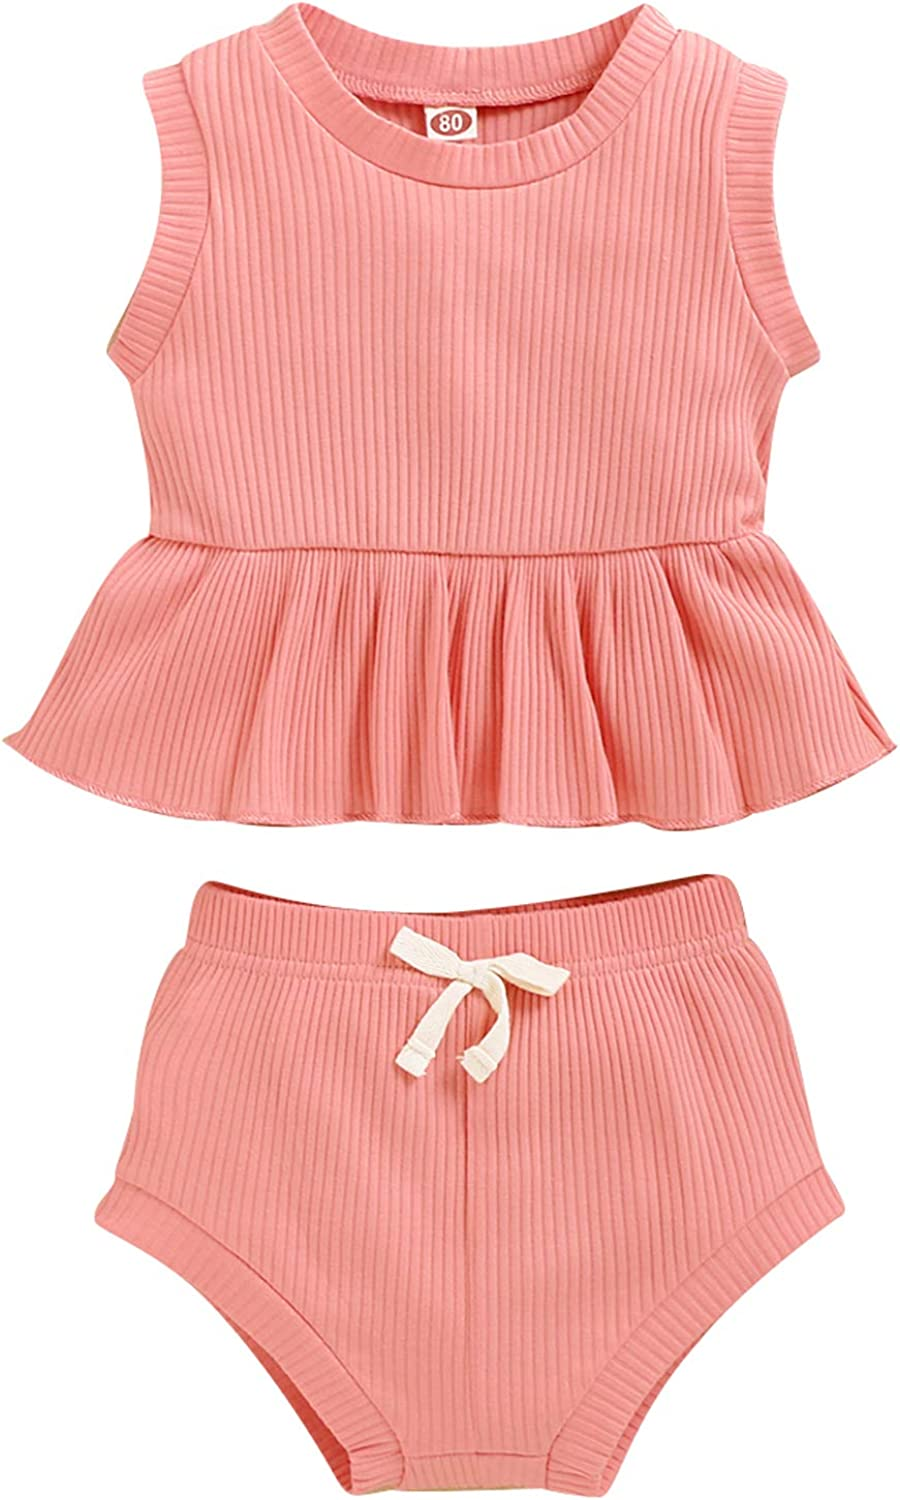 Baby Girl Clothes Toddler Branded goods Outfit 2Pcs Sets Sleeveles NEW Cotton